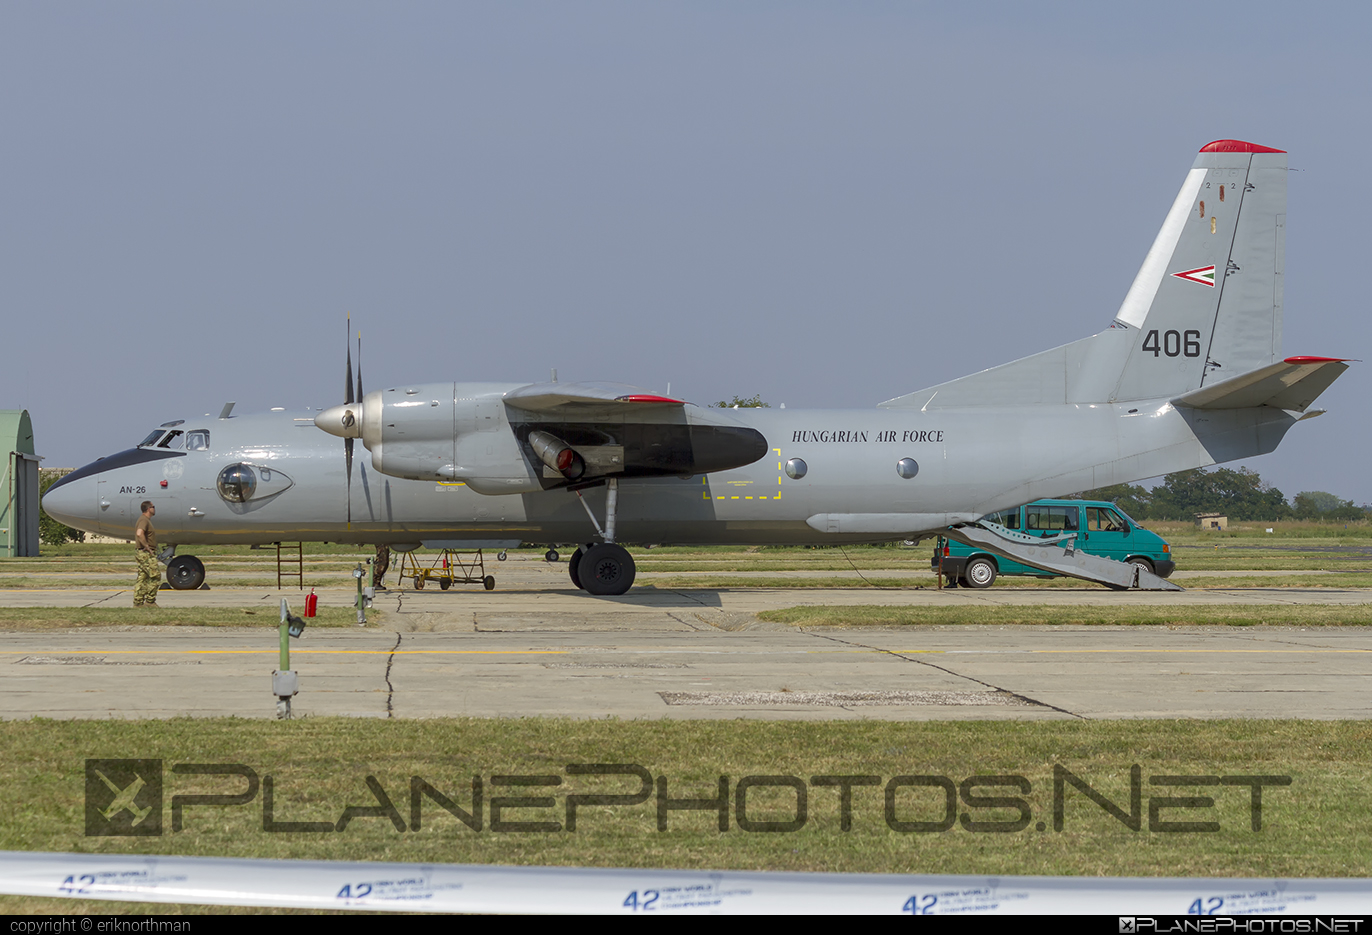 Antonov An-26 - 406 operated by Magyar Légierő (Hungarian Air Force) #an26 #antonov #antonov26 #hungarianairforce #magyarlegiero